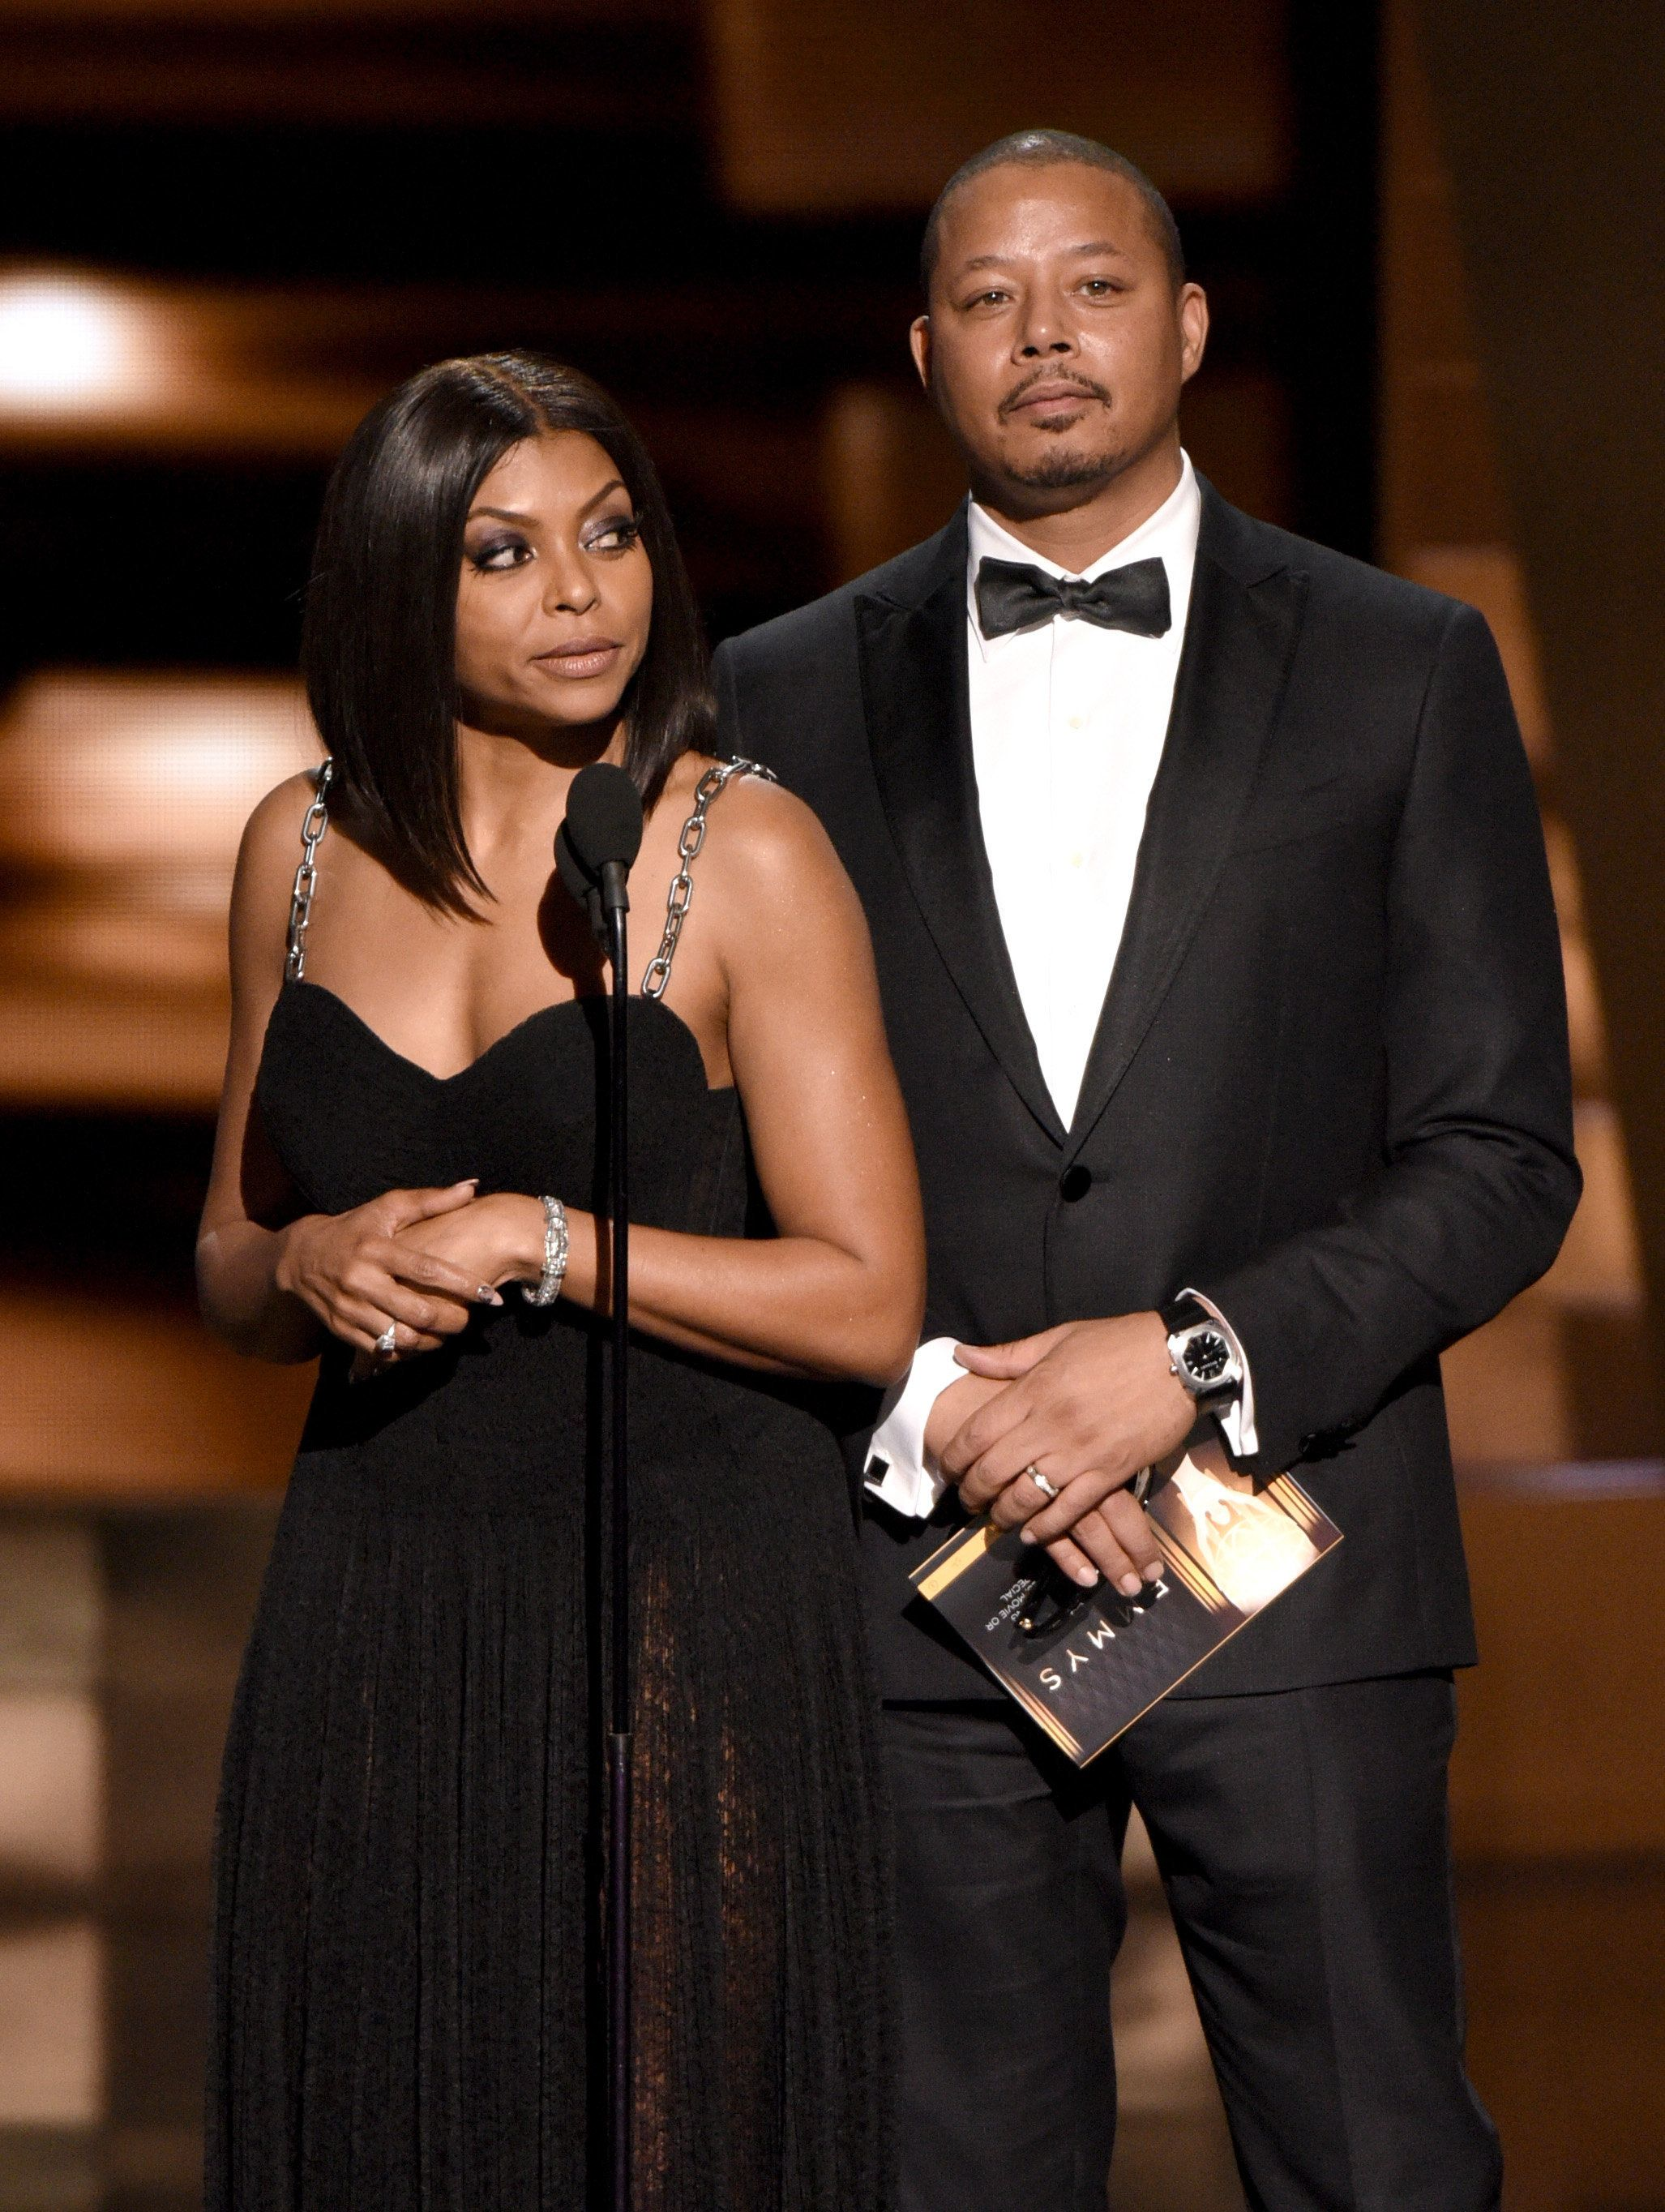 LOS ANGELES, CA - SEPTEMBER 20:  Actors Taraji P. Henson (L) and Terrence Howard speak onstage during the 67th Annual Primetime Emmy Awards at Microsoft Theater on September 20, 2015 in Los Angeles, California.  (Photo by FOX/FOX Collection/Getty Images)